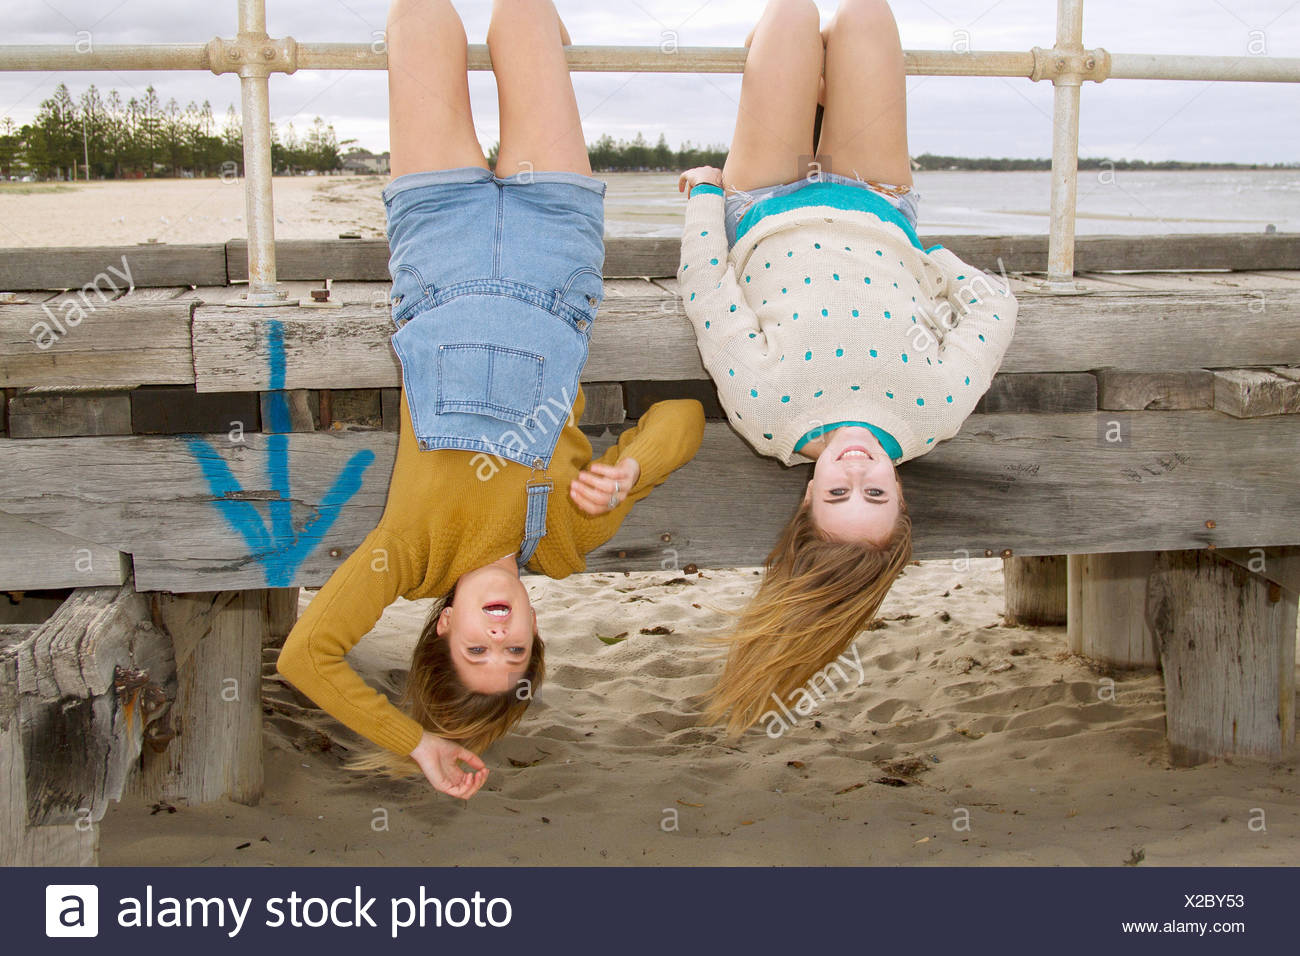 Girlfriends hanging upside down from pier - Stock Image